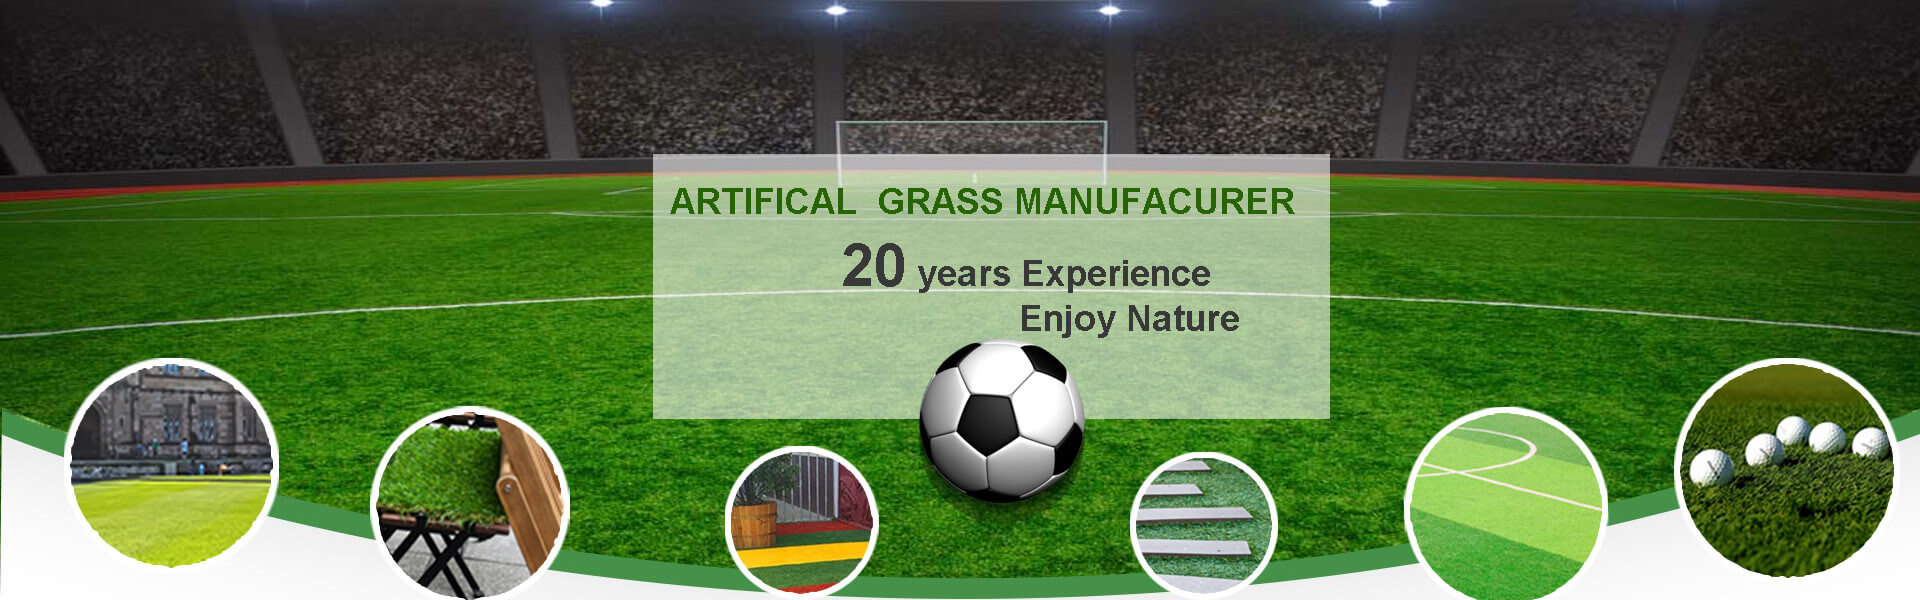 Artificial turfArtificial grass